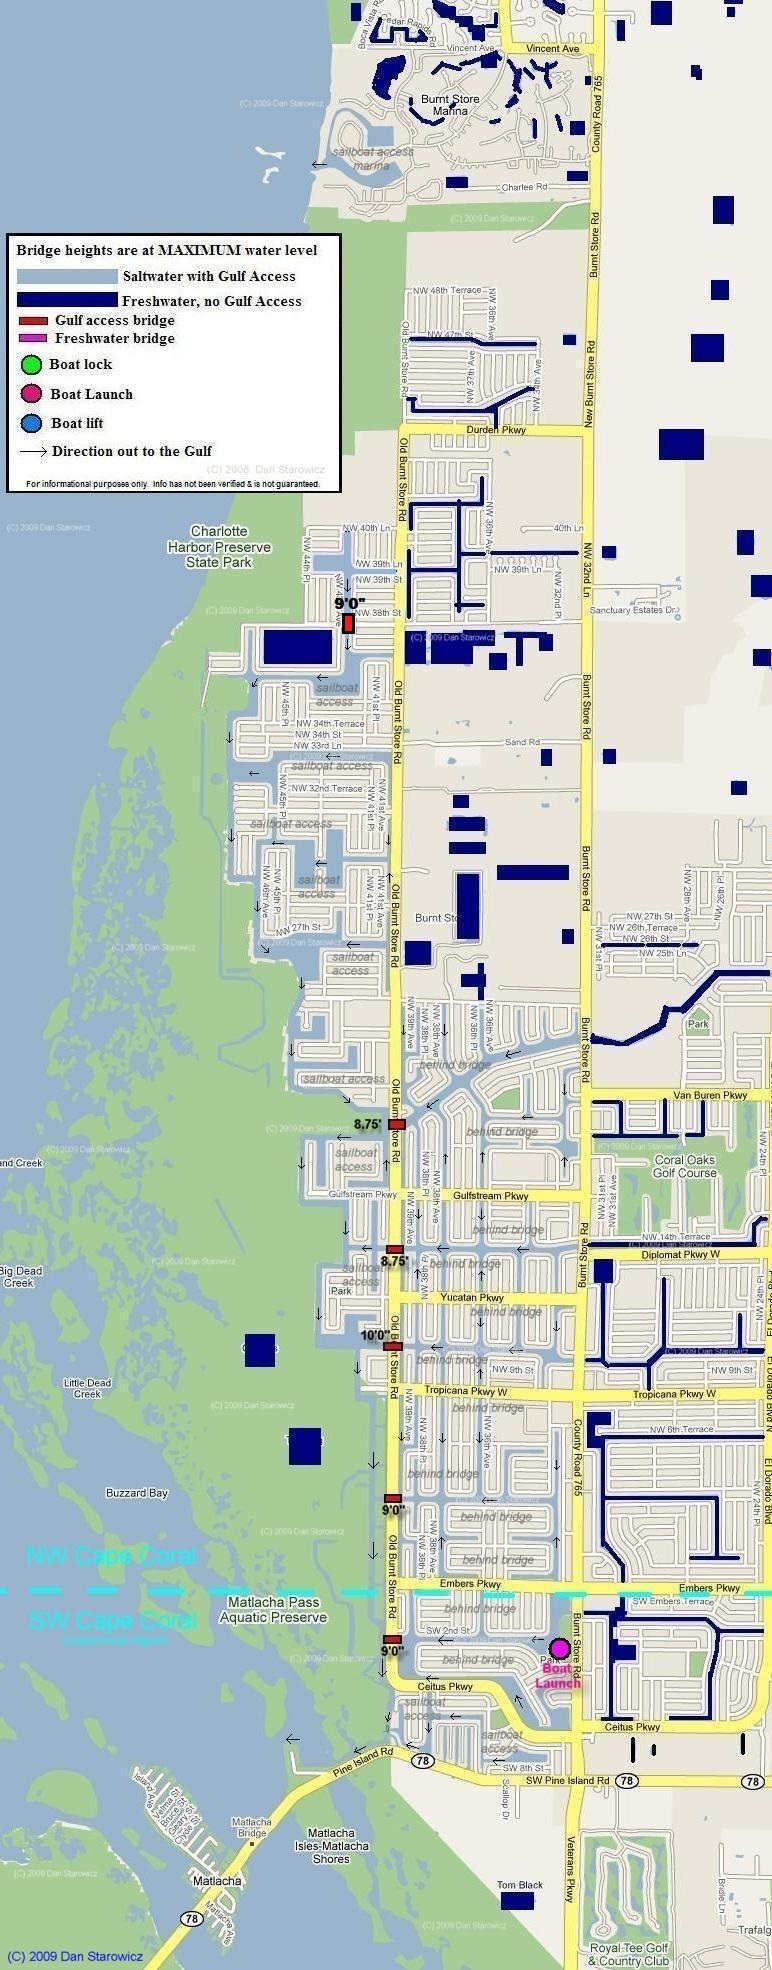 Map of Northwest Cape Coral Florida includes locations and heights of Bridges, boat locks and boat lifts as well as the location of saltwater and freshwater canals includes Burnt Store Marina and Matlacha Pass